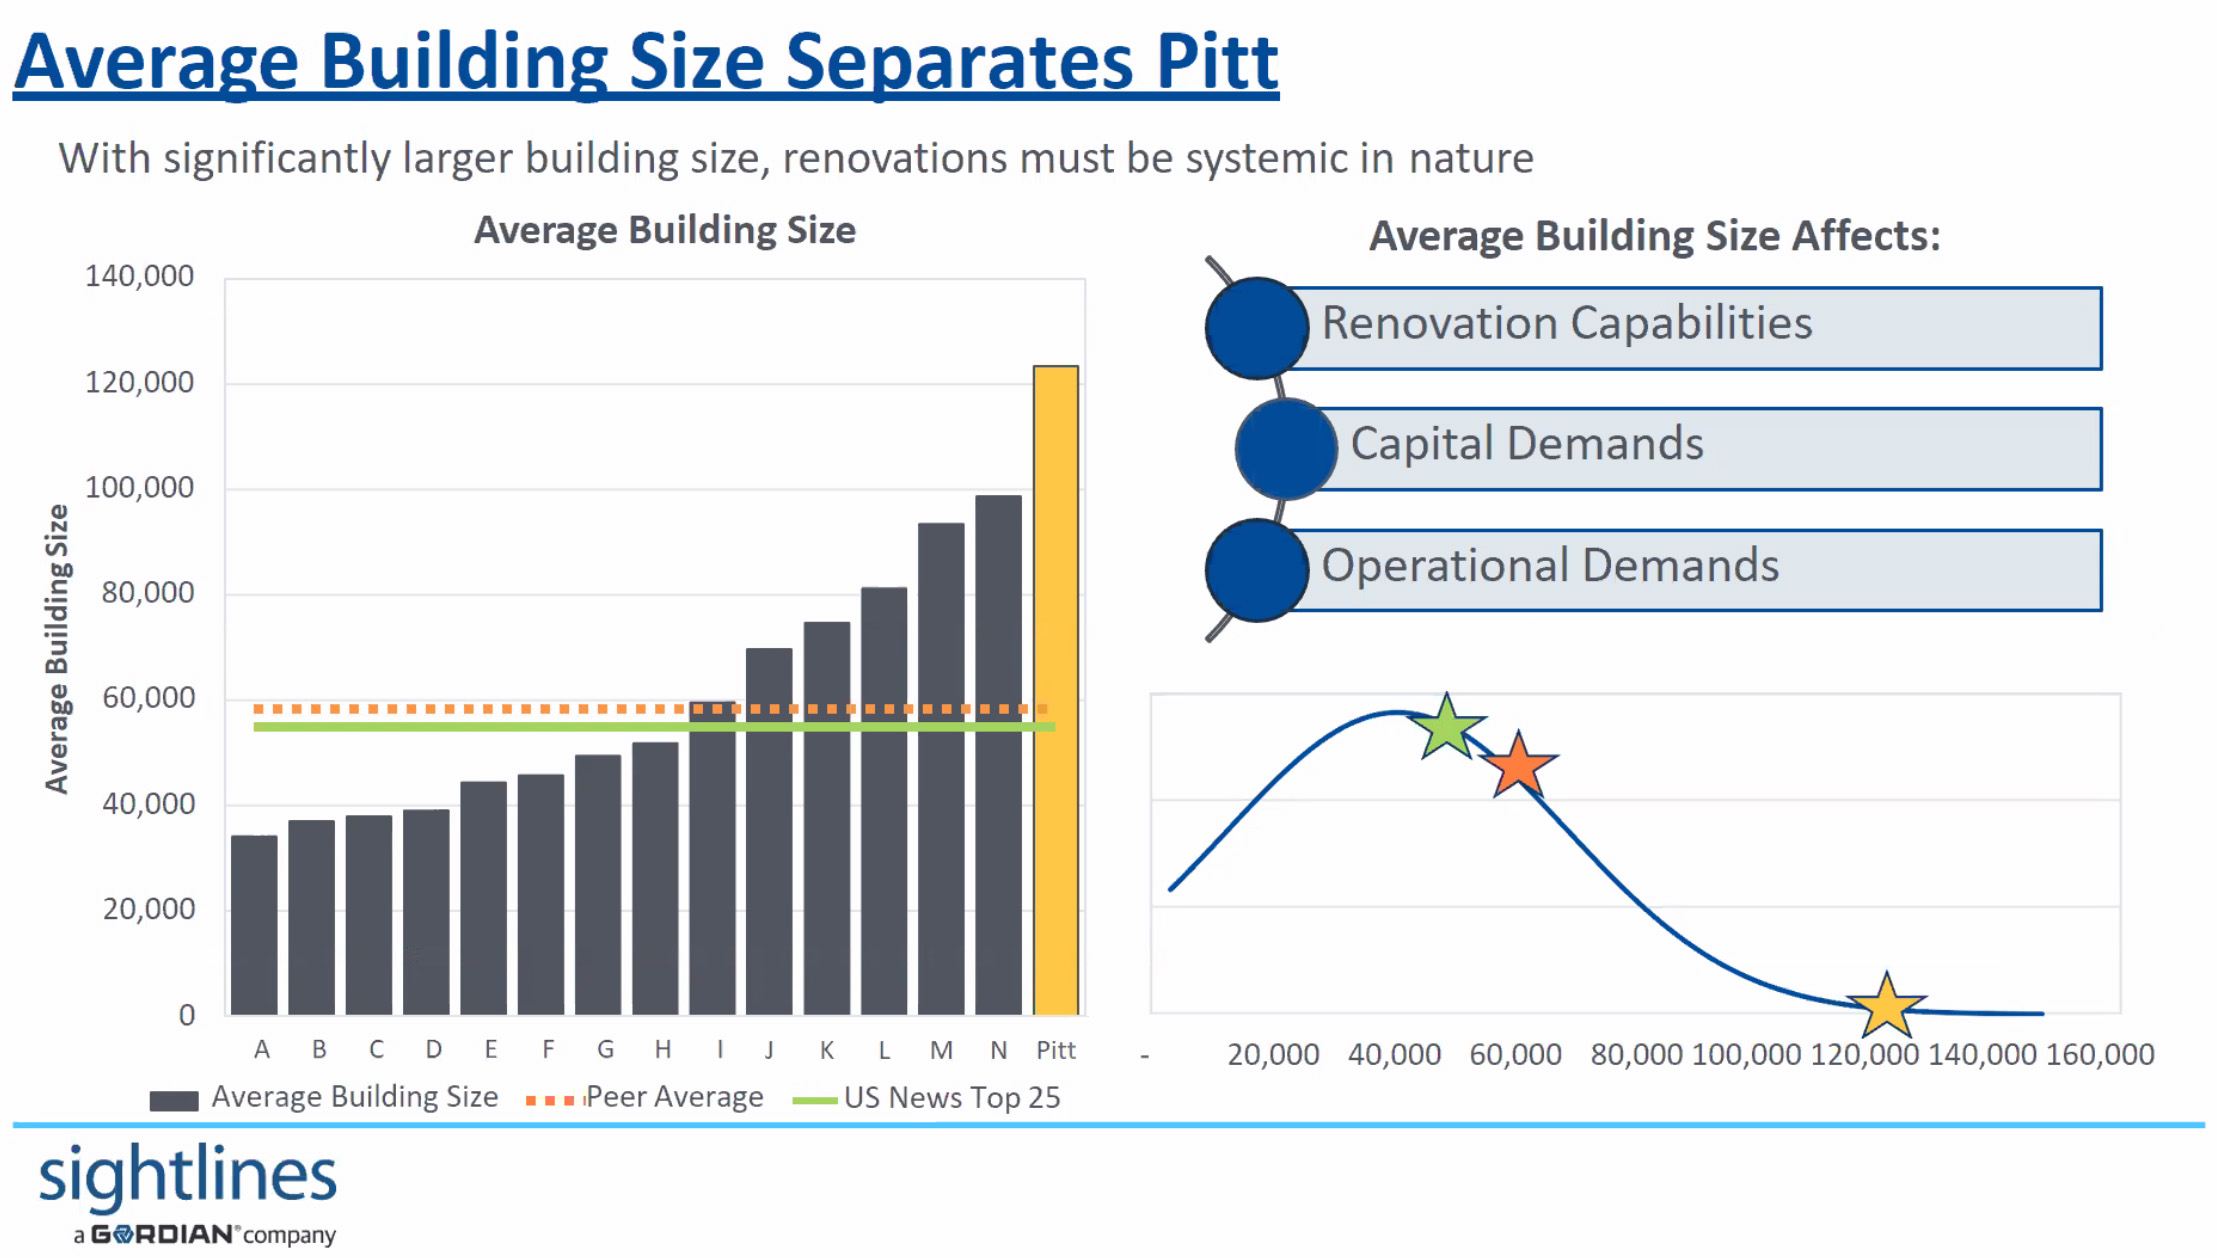 Chart showing Pitt building size compared to peer institutions